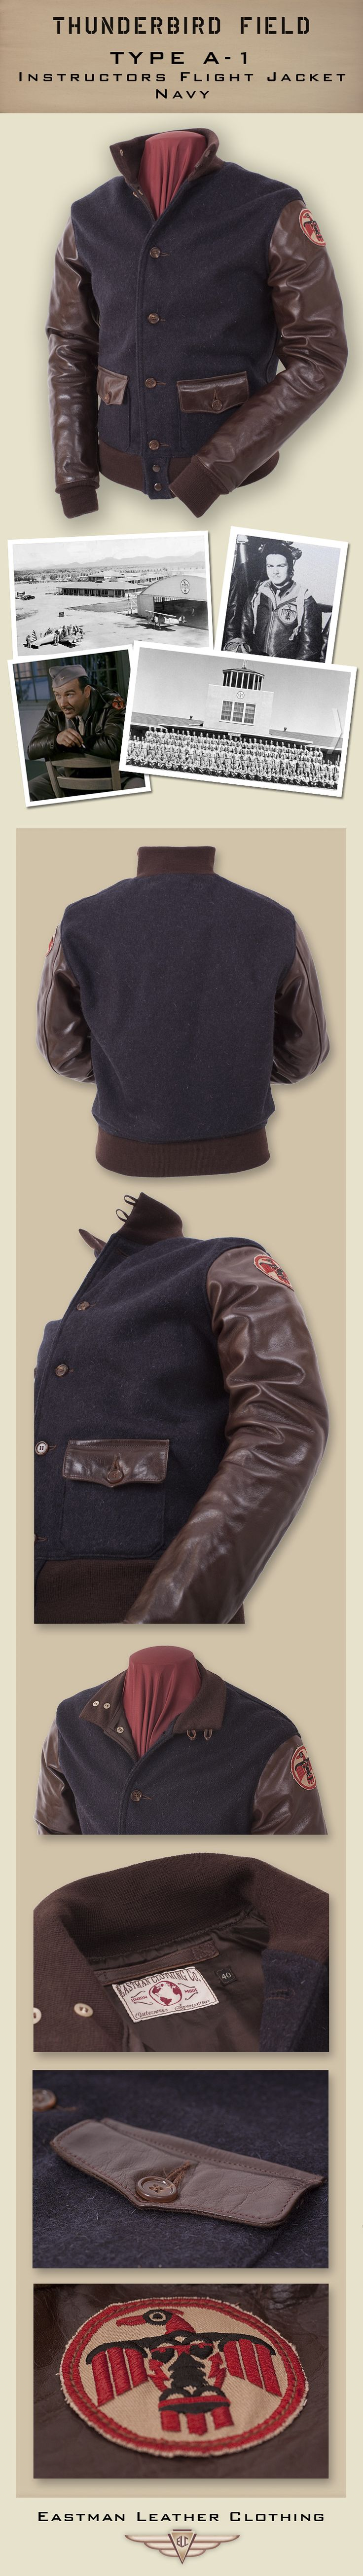 Eastman Leather Clothing - Civilian Design Classics : Tb A-1 Nvy